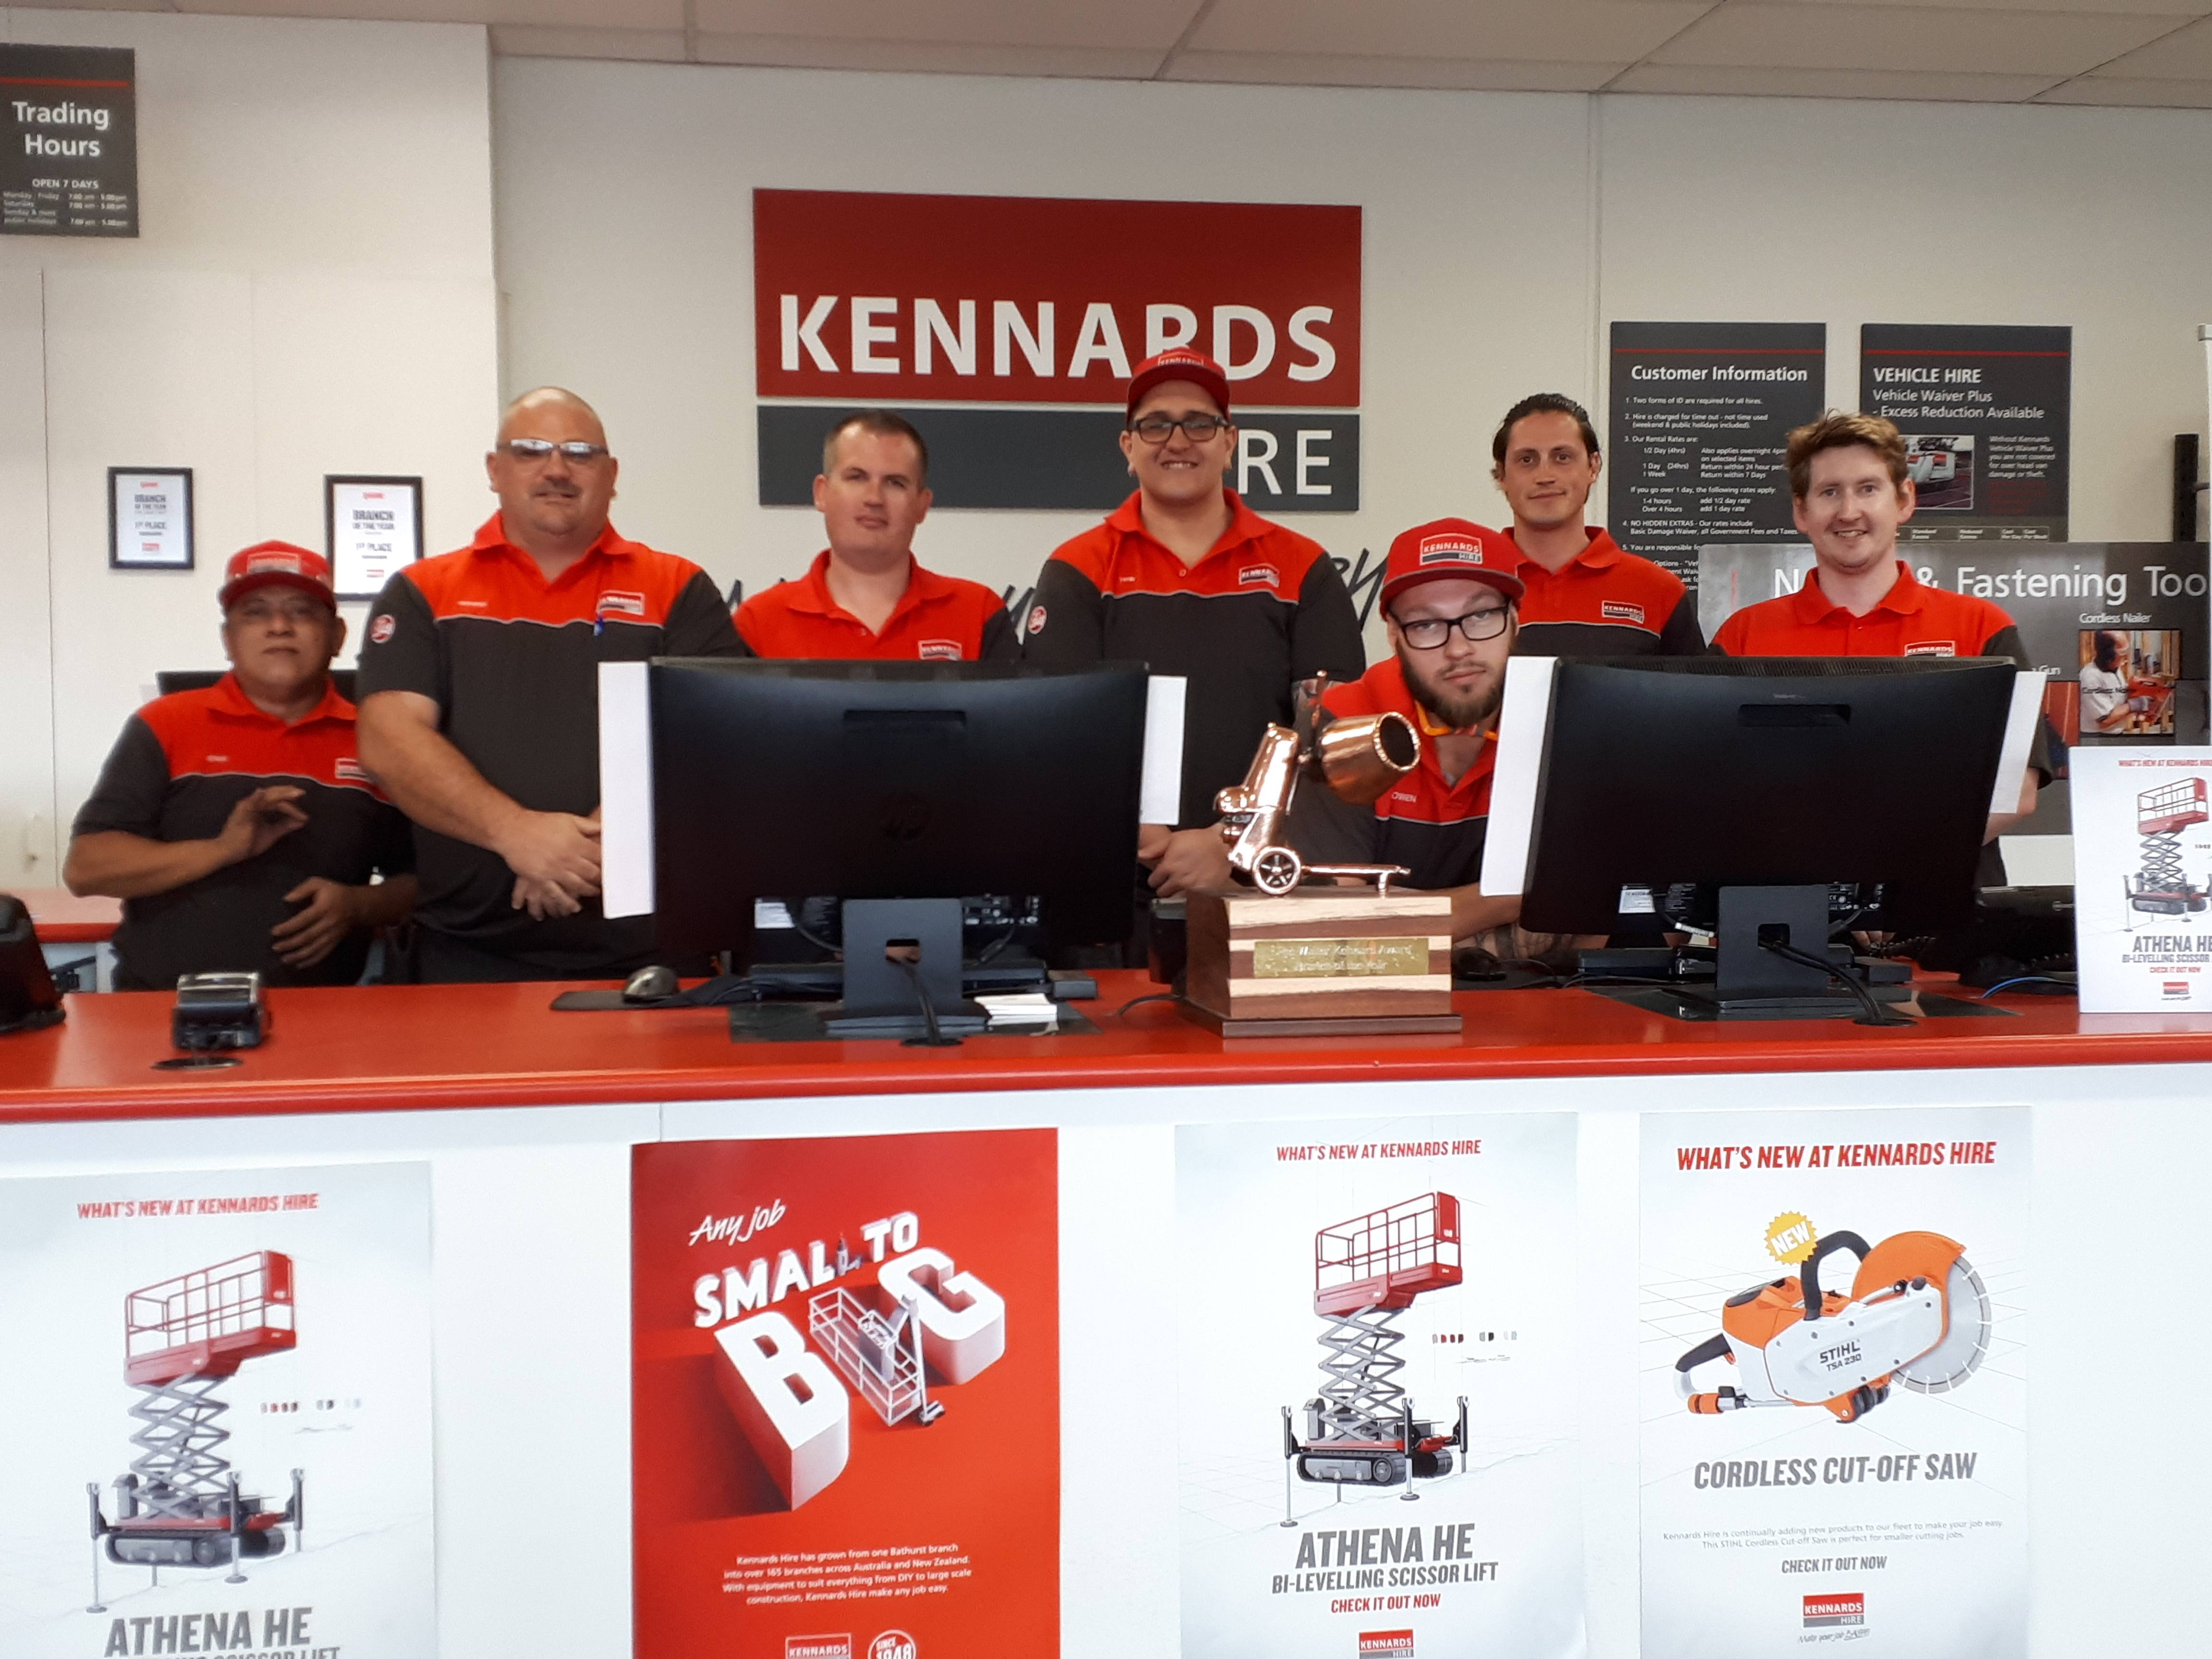 The Kennards Hire Moorabbin team